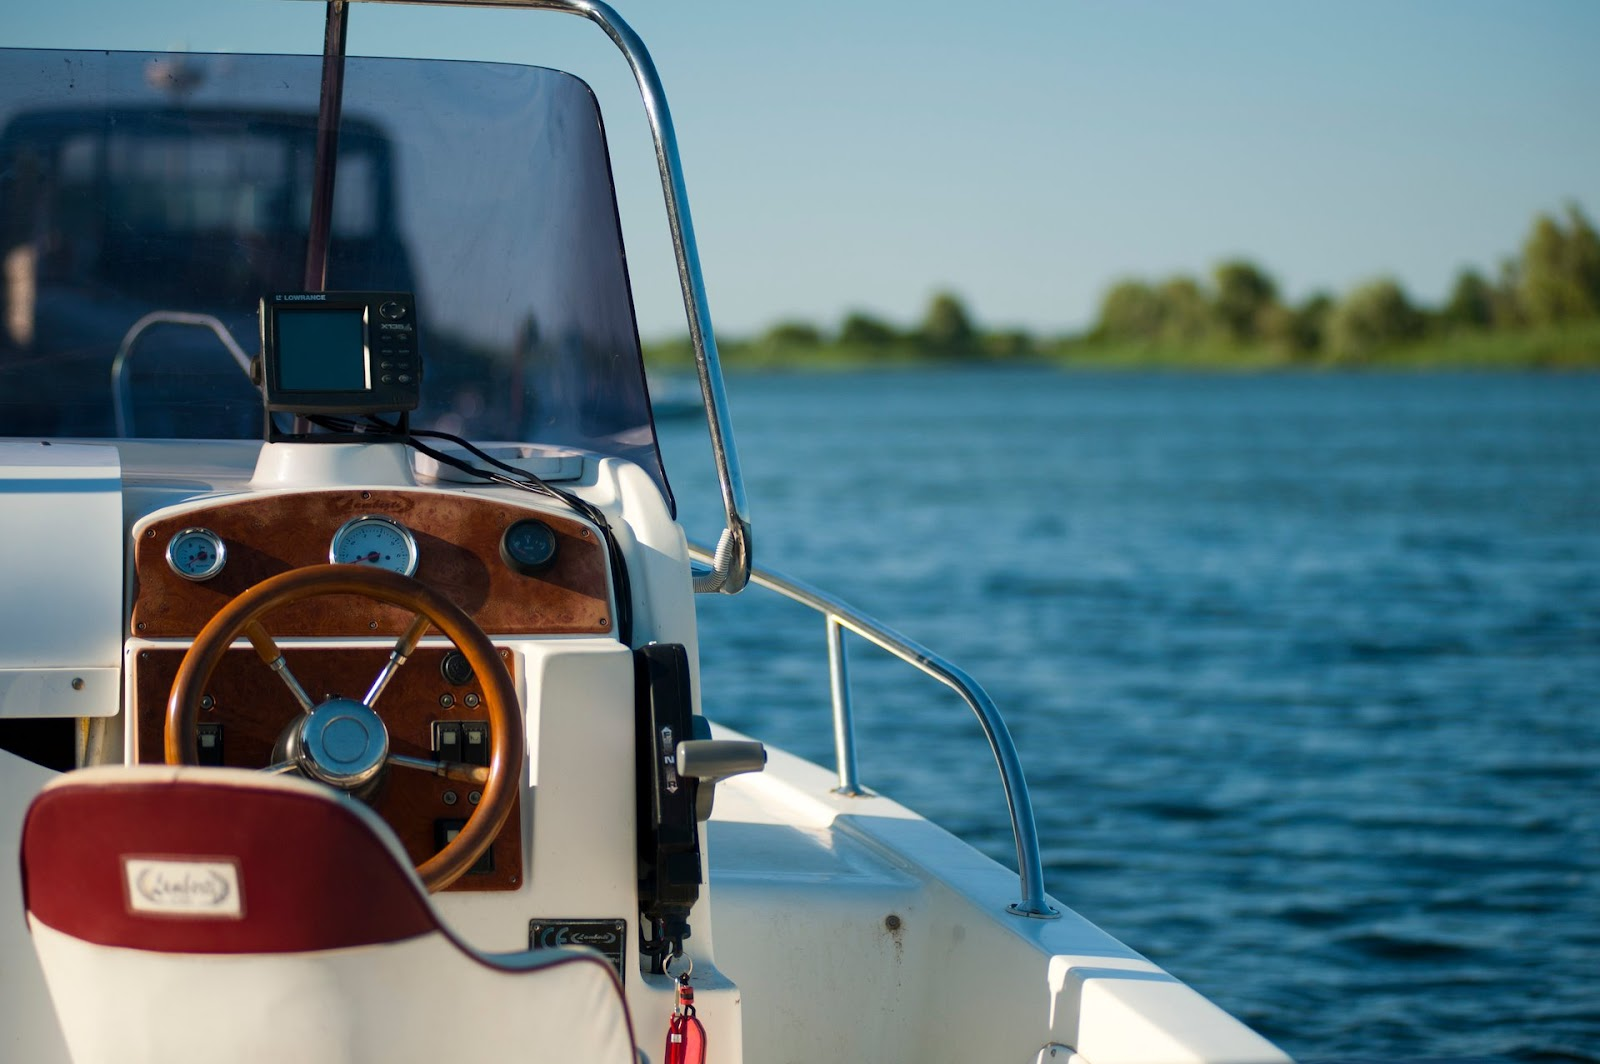 The Best Boat Moments In Cinematic History That Will Convince You To Buy A Boat 1